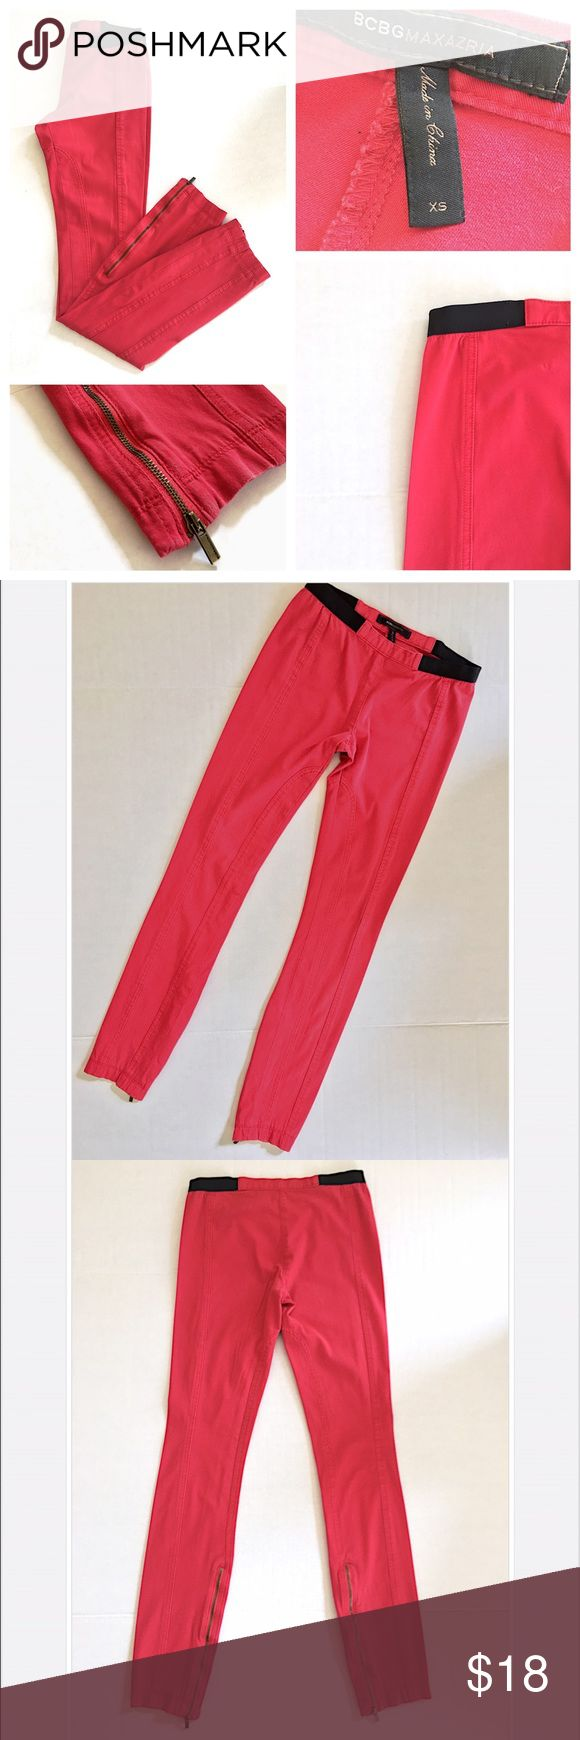 BCBGMaxAzria Red Skinny Pant + Legging w/Zipper BCBGMaxAzria Red Skinny Pant + Legging w/Zipper//Size XS//In Good Condition + Only Worn a Few Times👍🏻//Let me know if you need add'l info or pics! BCBGMaxAzria Pants Leggings